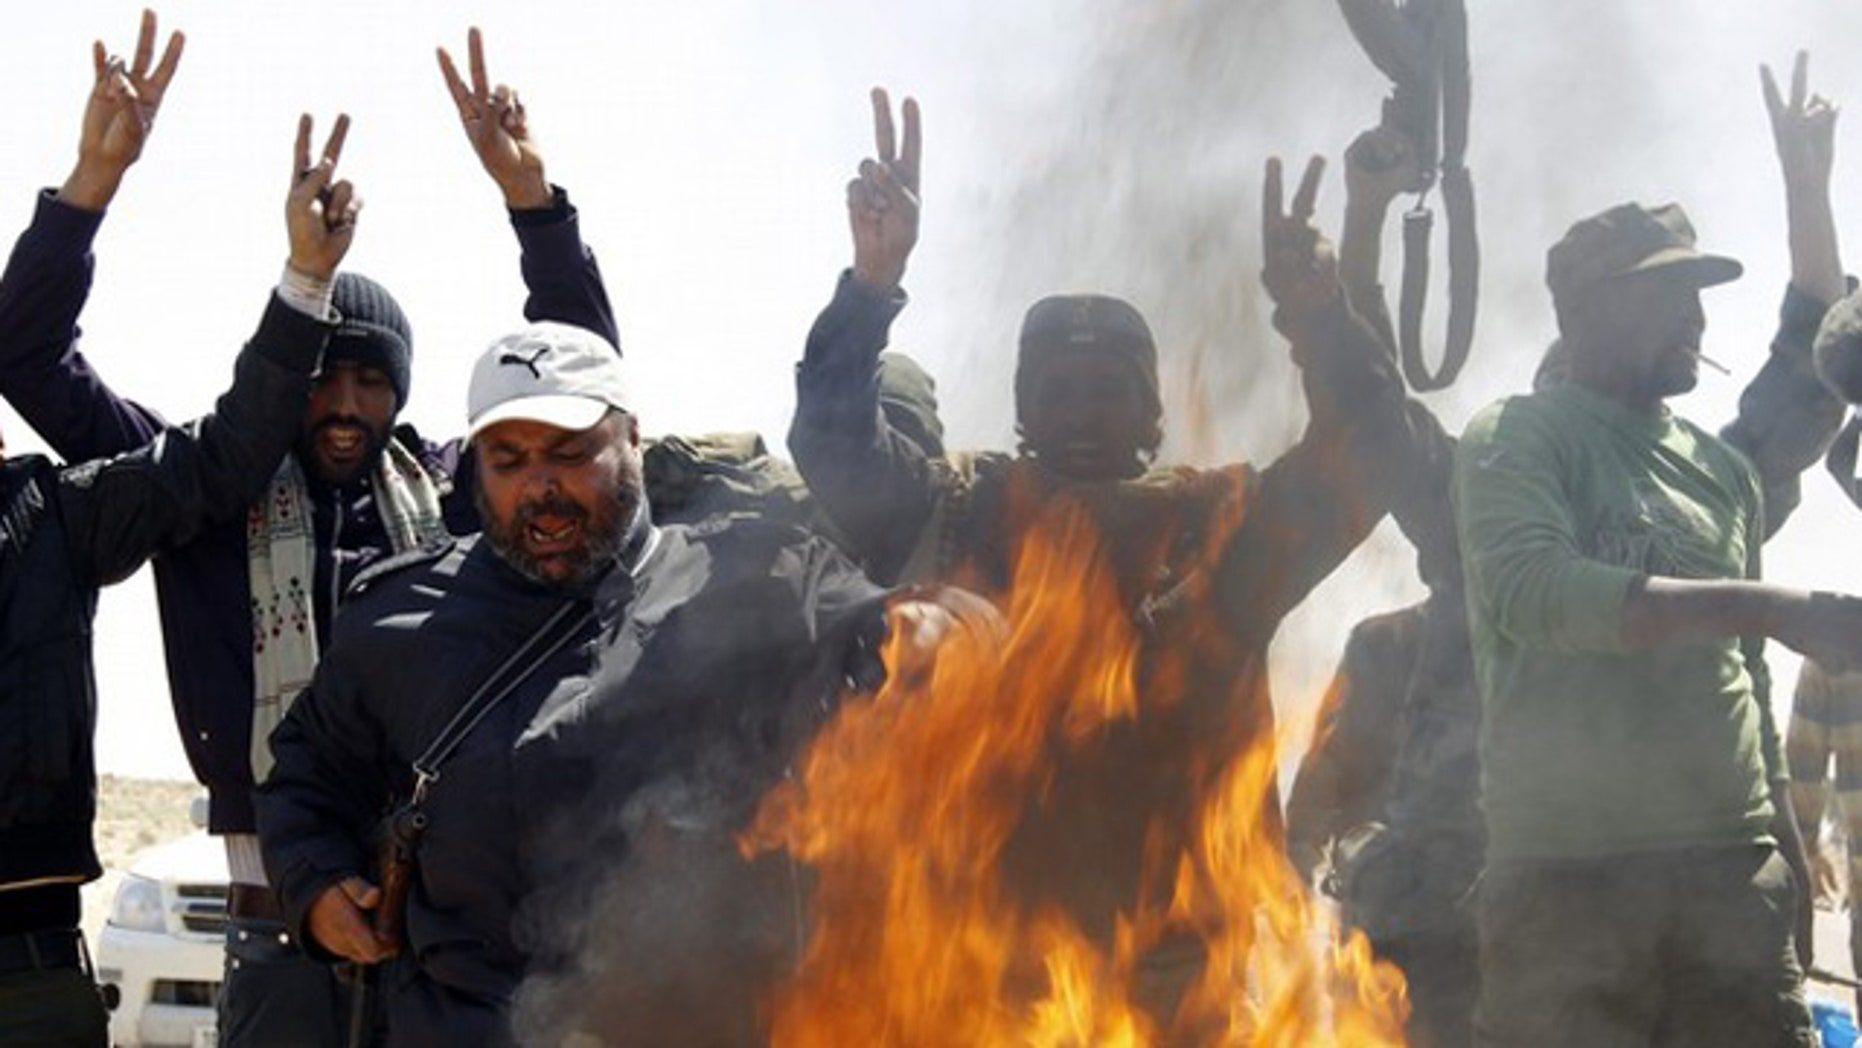 March 25: Rebel fighters shout over a fire ignited to burn clothes of soldiers loyal to Libyan leader Muammar al-Qaddafi along a Benghazi-Ajdabiyah road near Ajdabiyah.